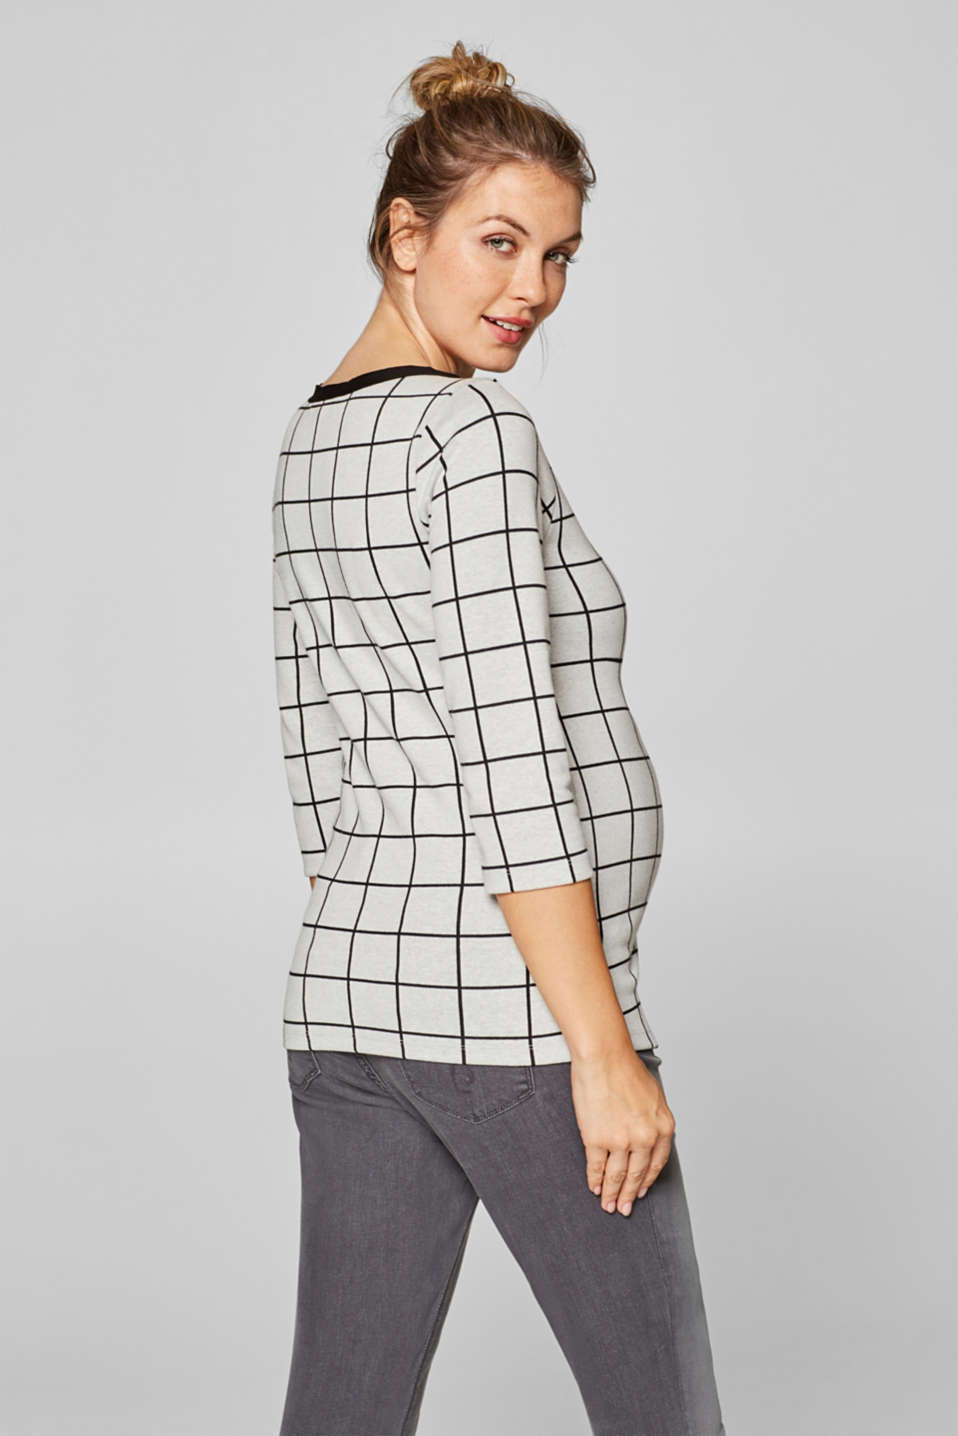 Long sleeve top with a graphic pattern and stretch for comfort, LCBLACK, detail image number 3